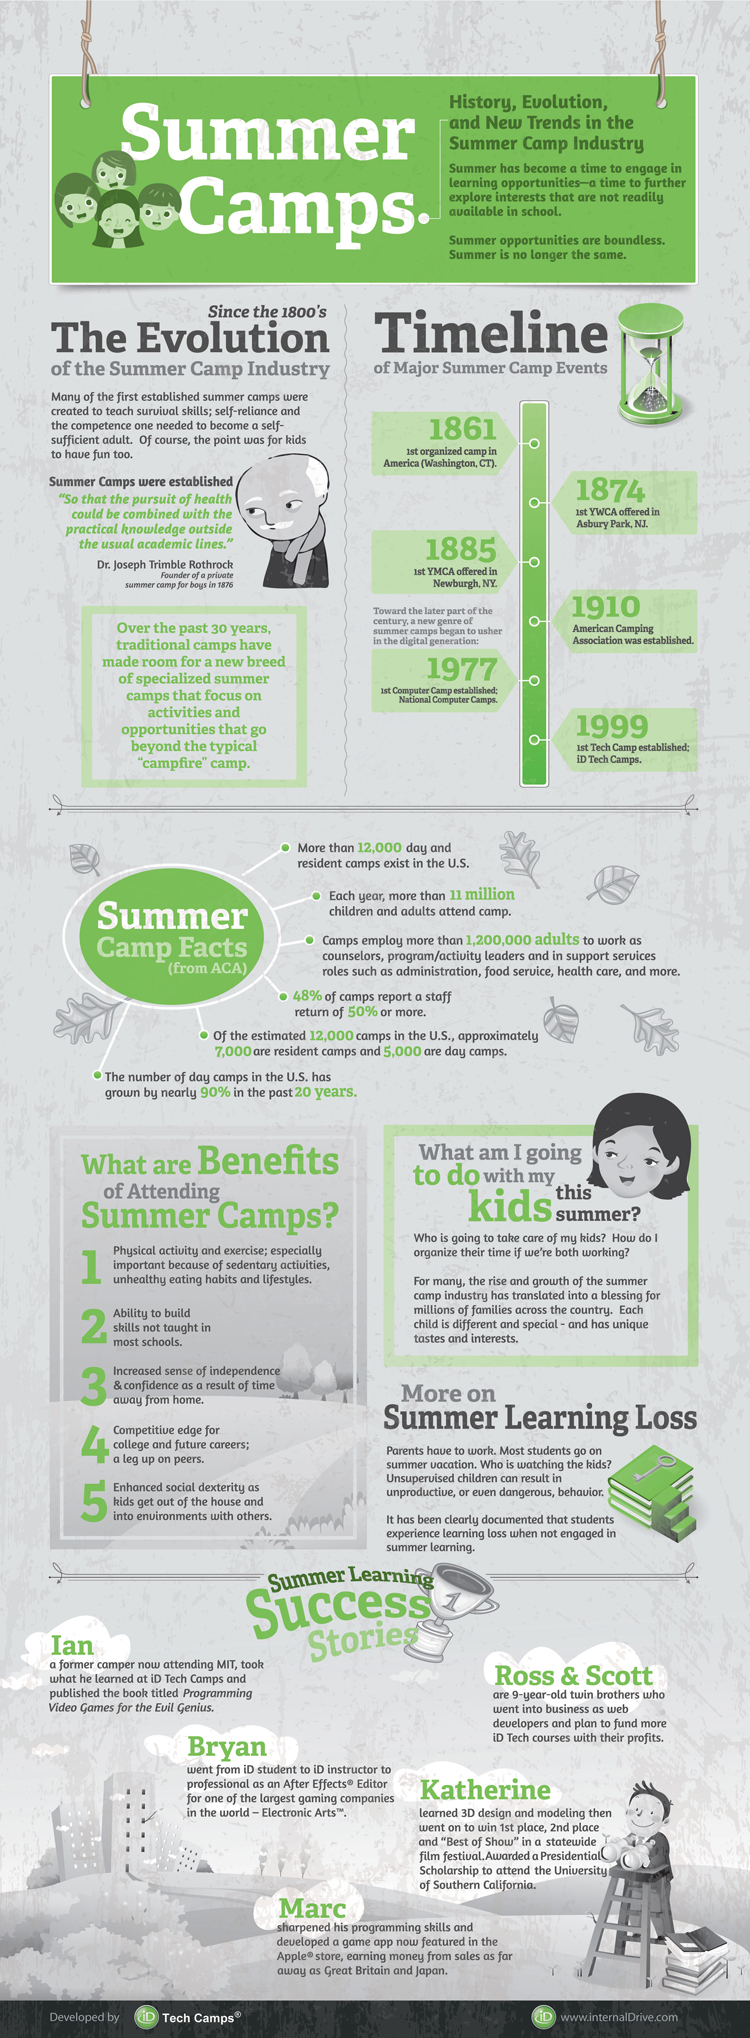 History (and Future) of Summer Camps